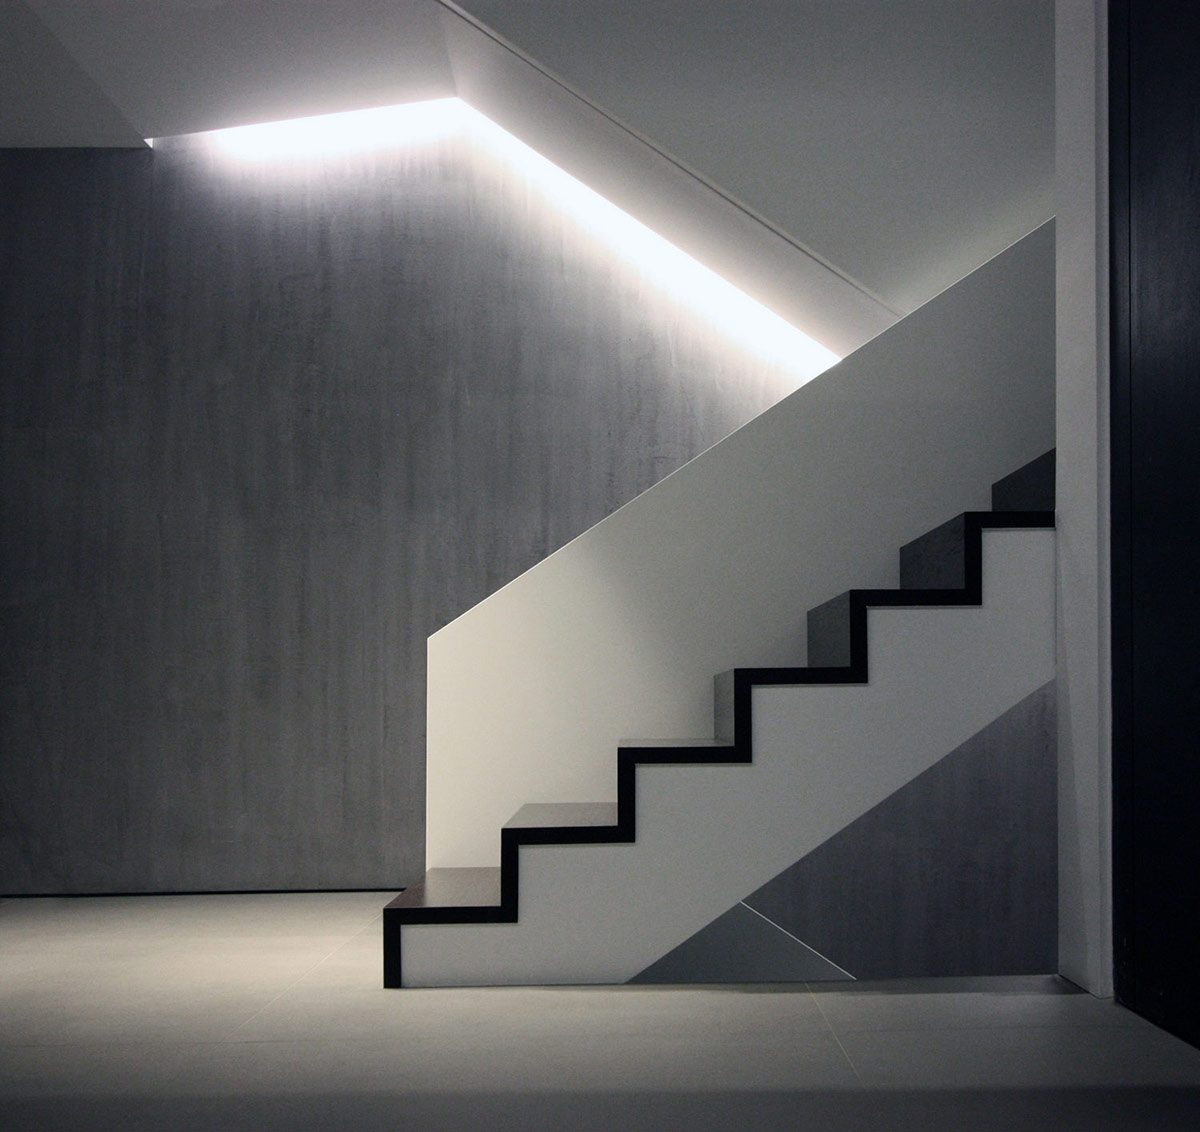 Black & White Stairs, Hilltop Home in Thessaloniki, Greece by Office 25 Architects